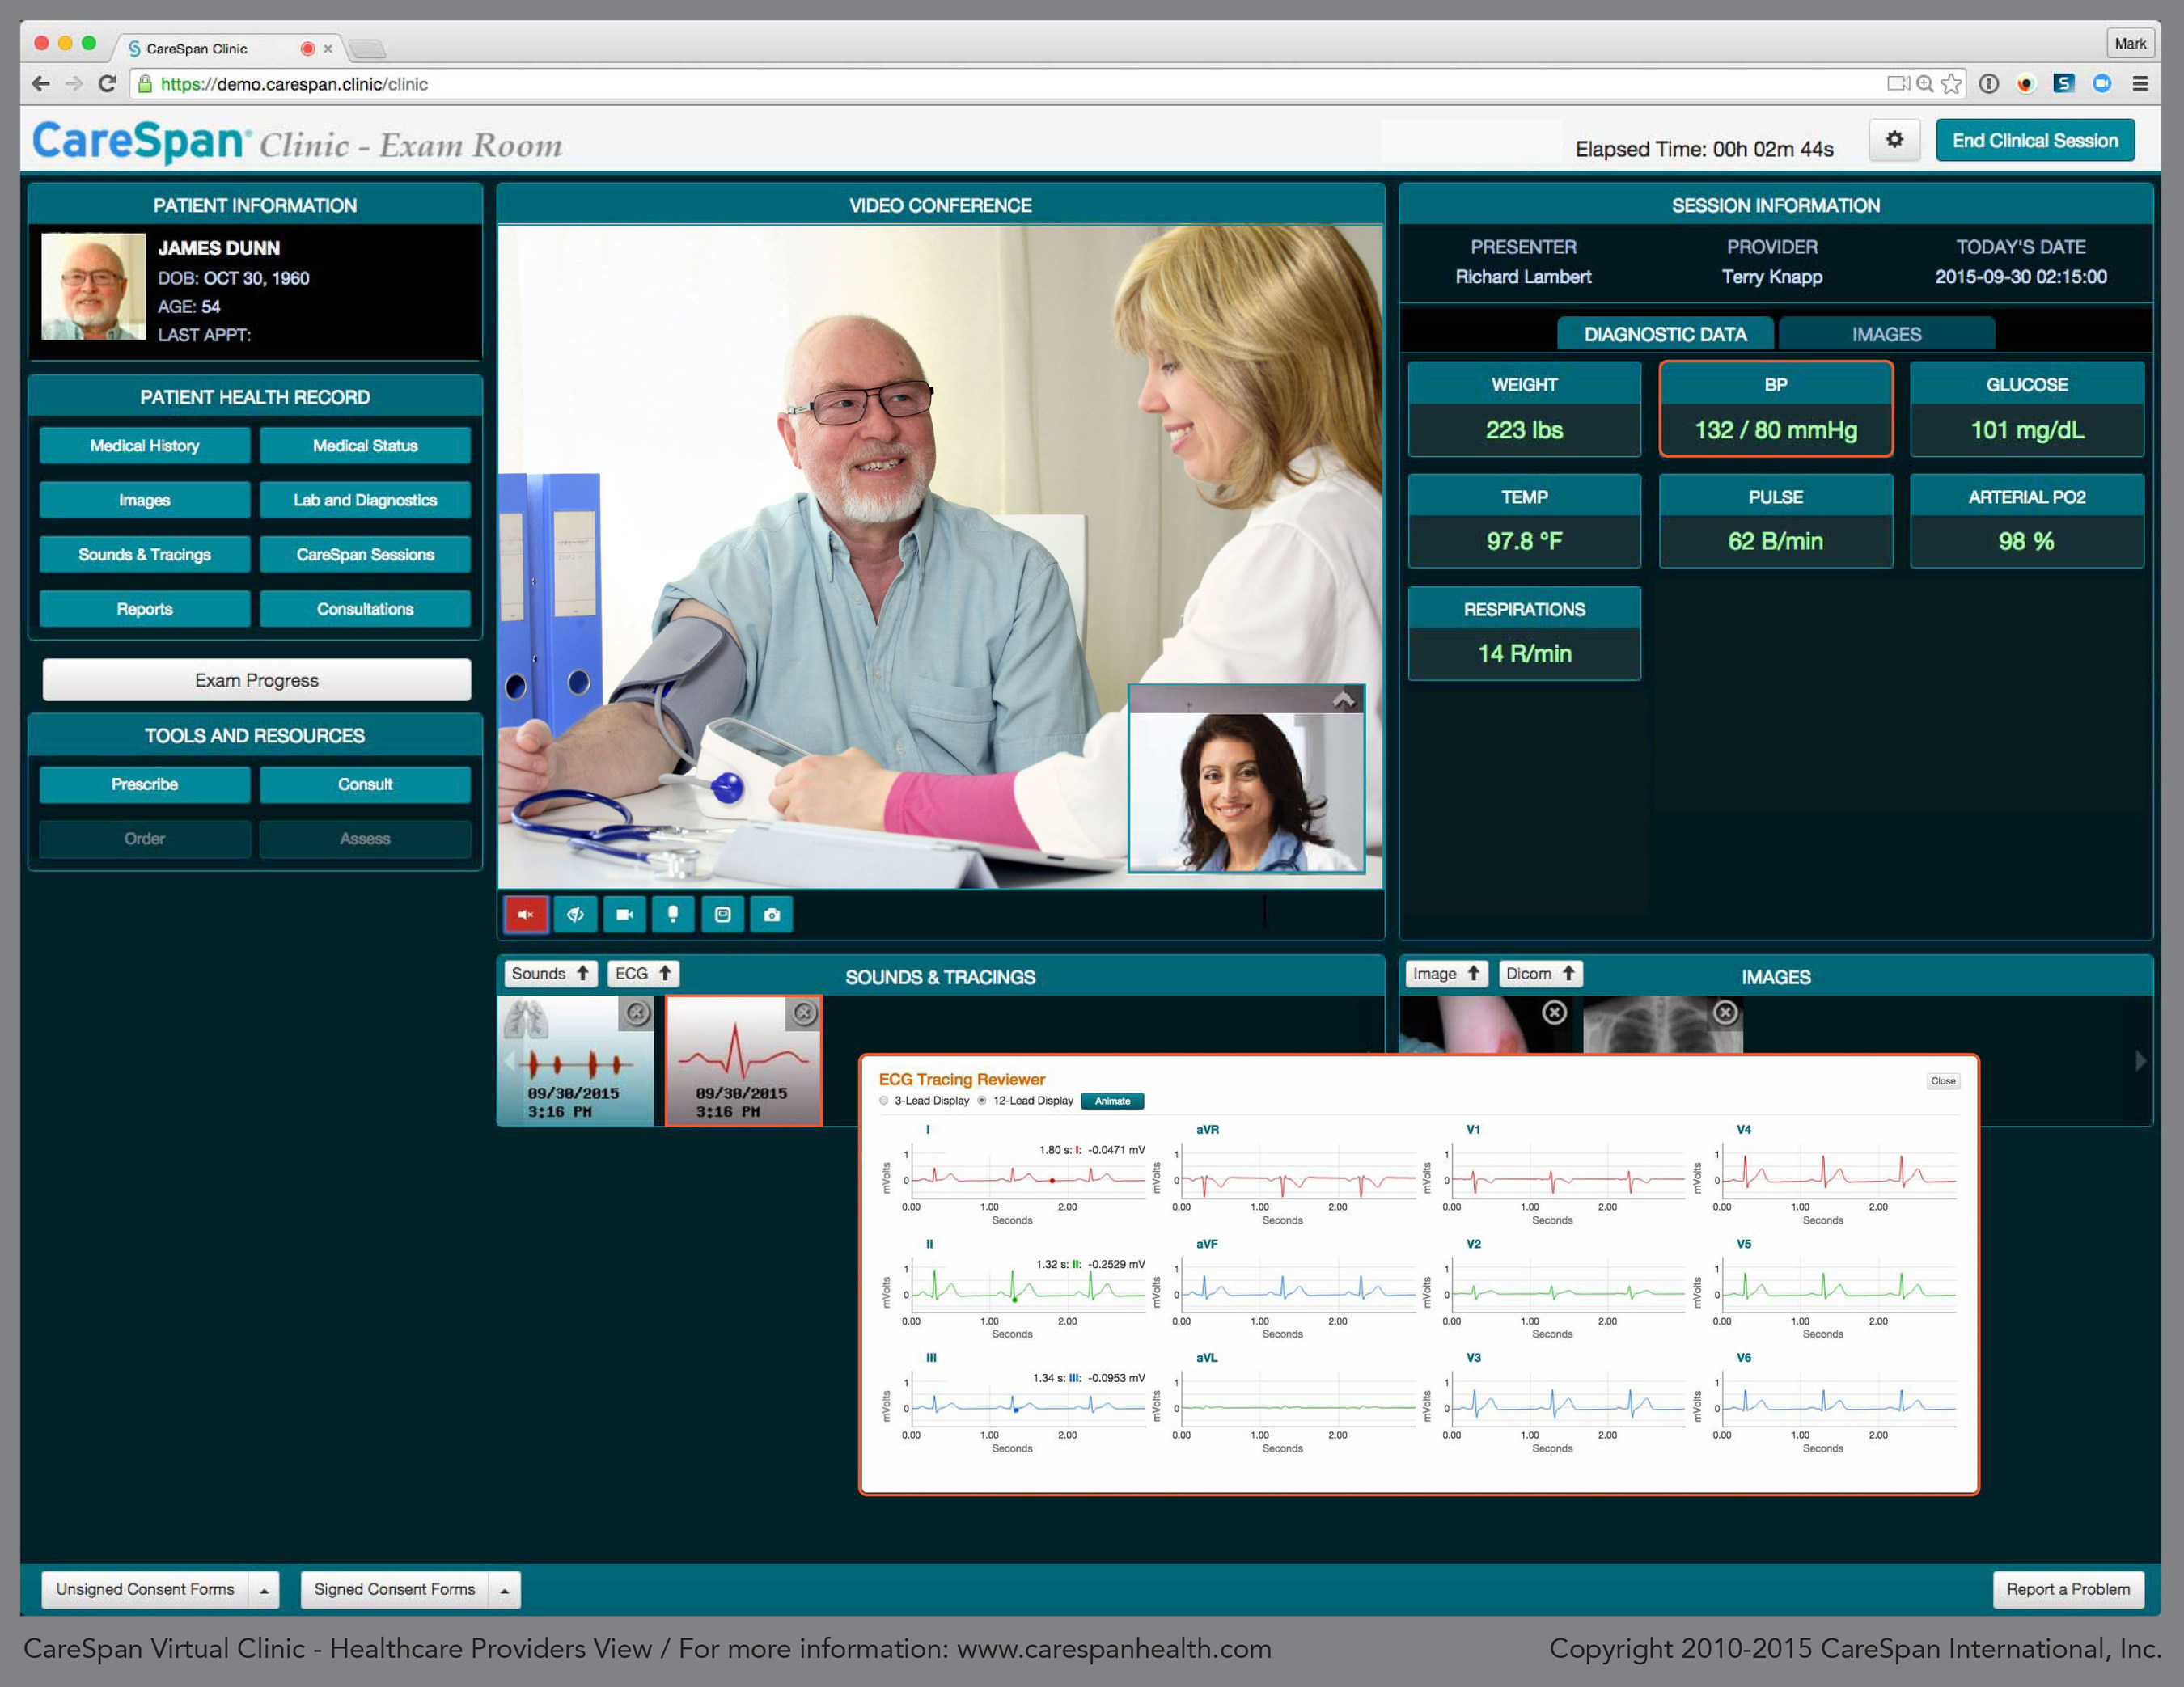 CareSpan and Lamprey Networks Deliver the First Online Virtual Clinic That Meets the Standards of